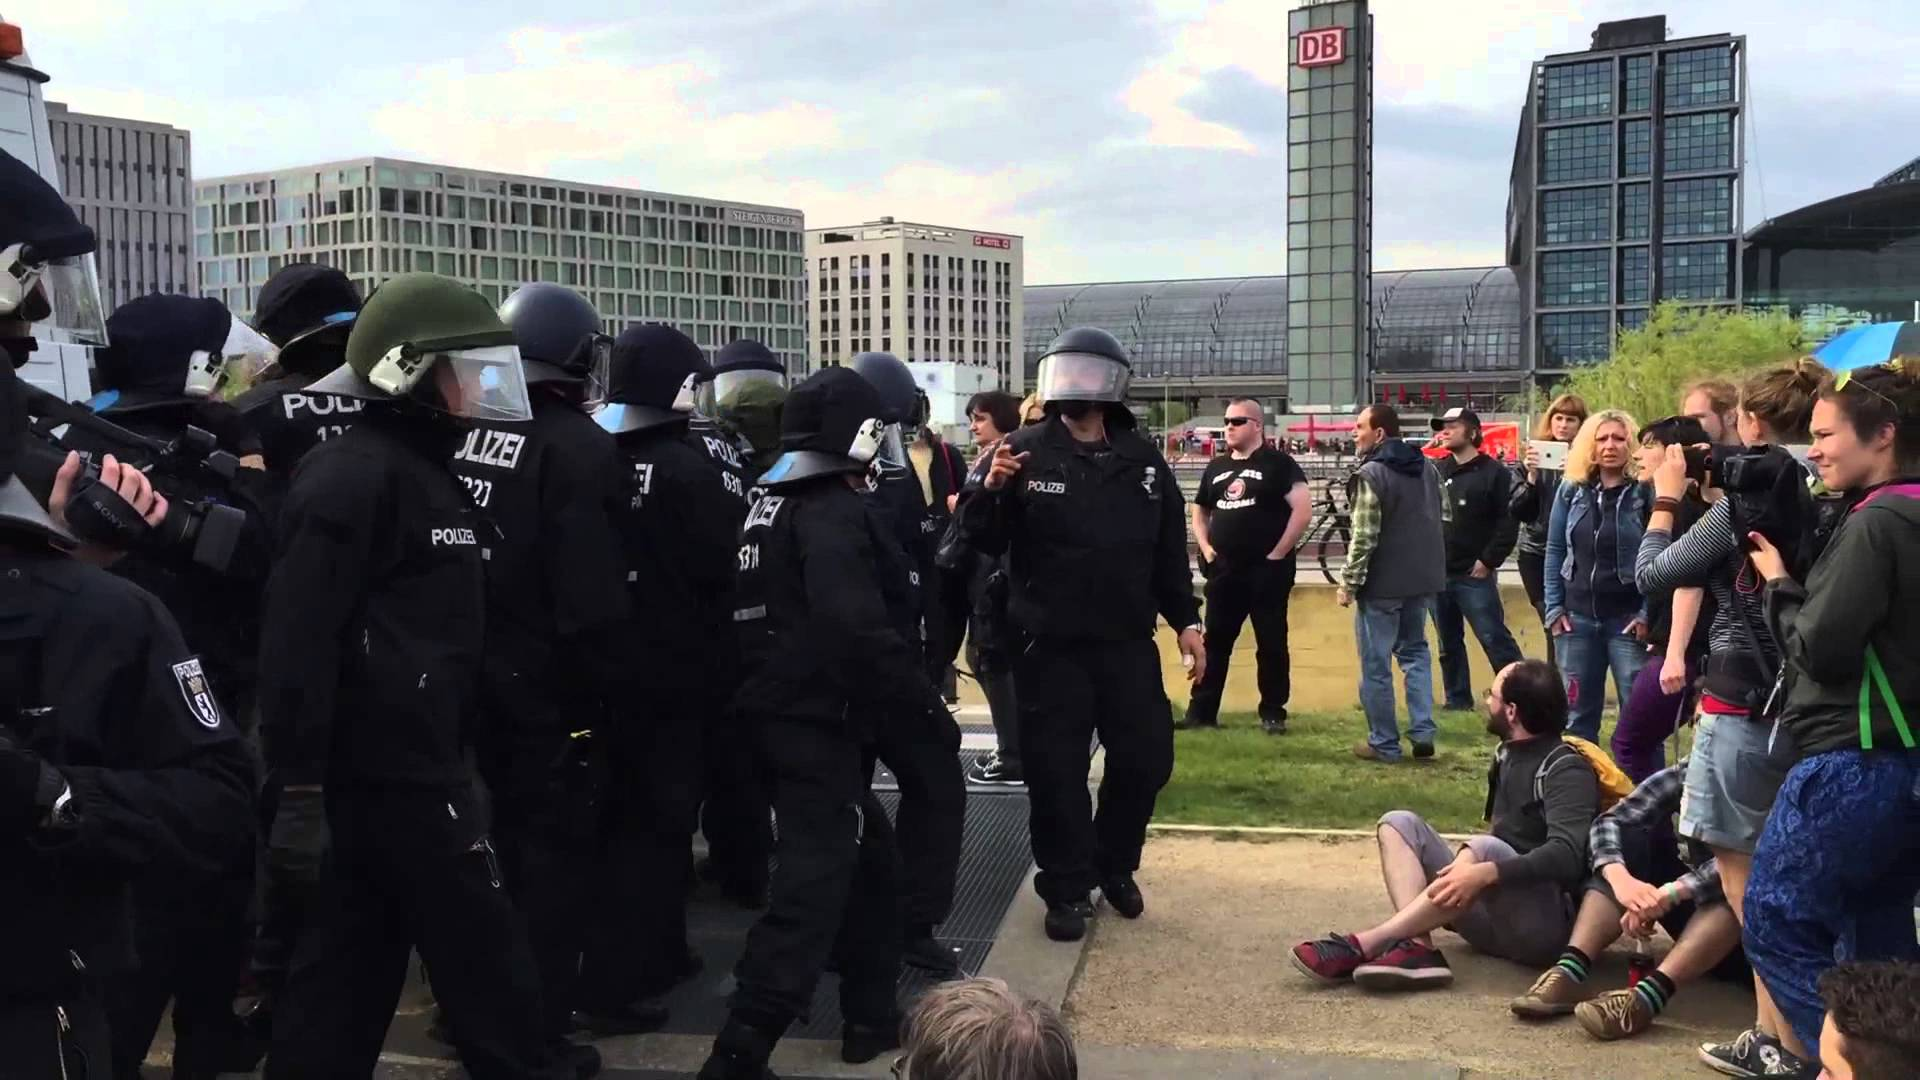 Pro-Nazi and Anti-Fa Clash In Germany VIDEO